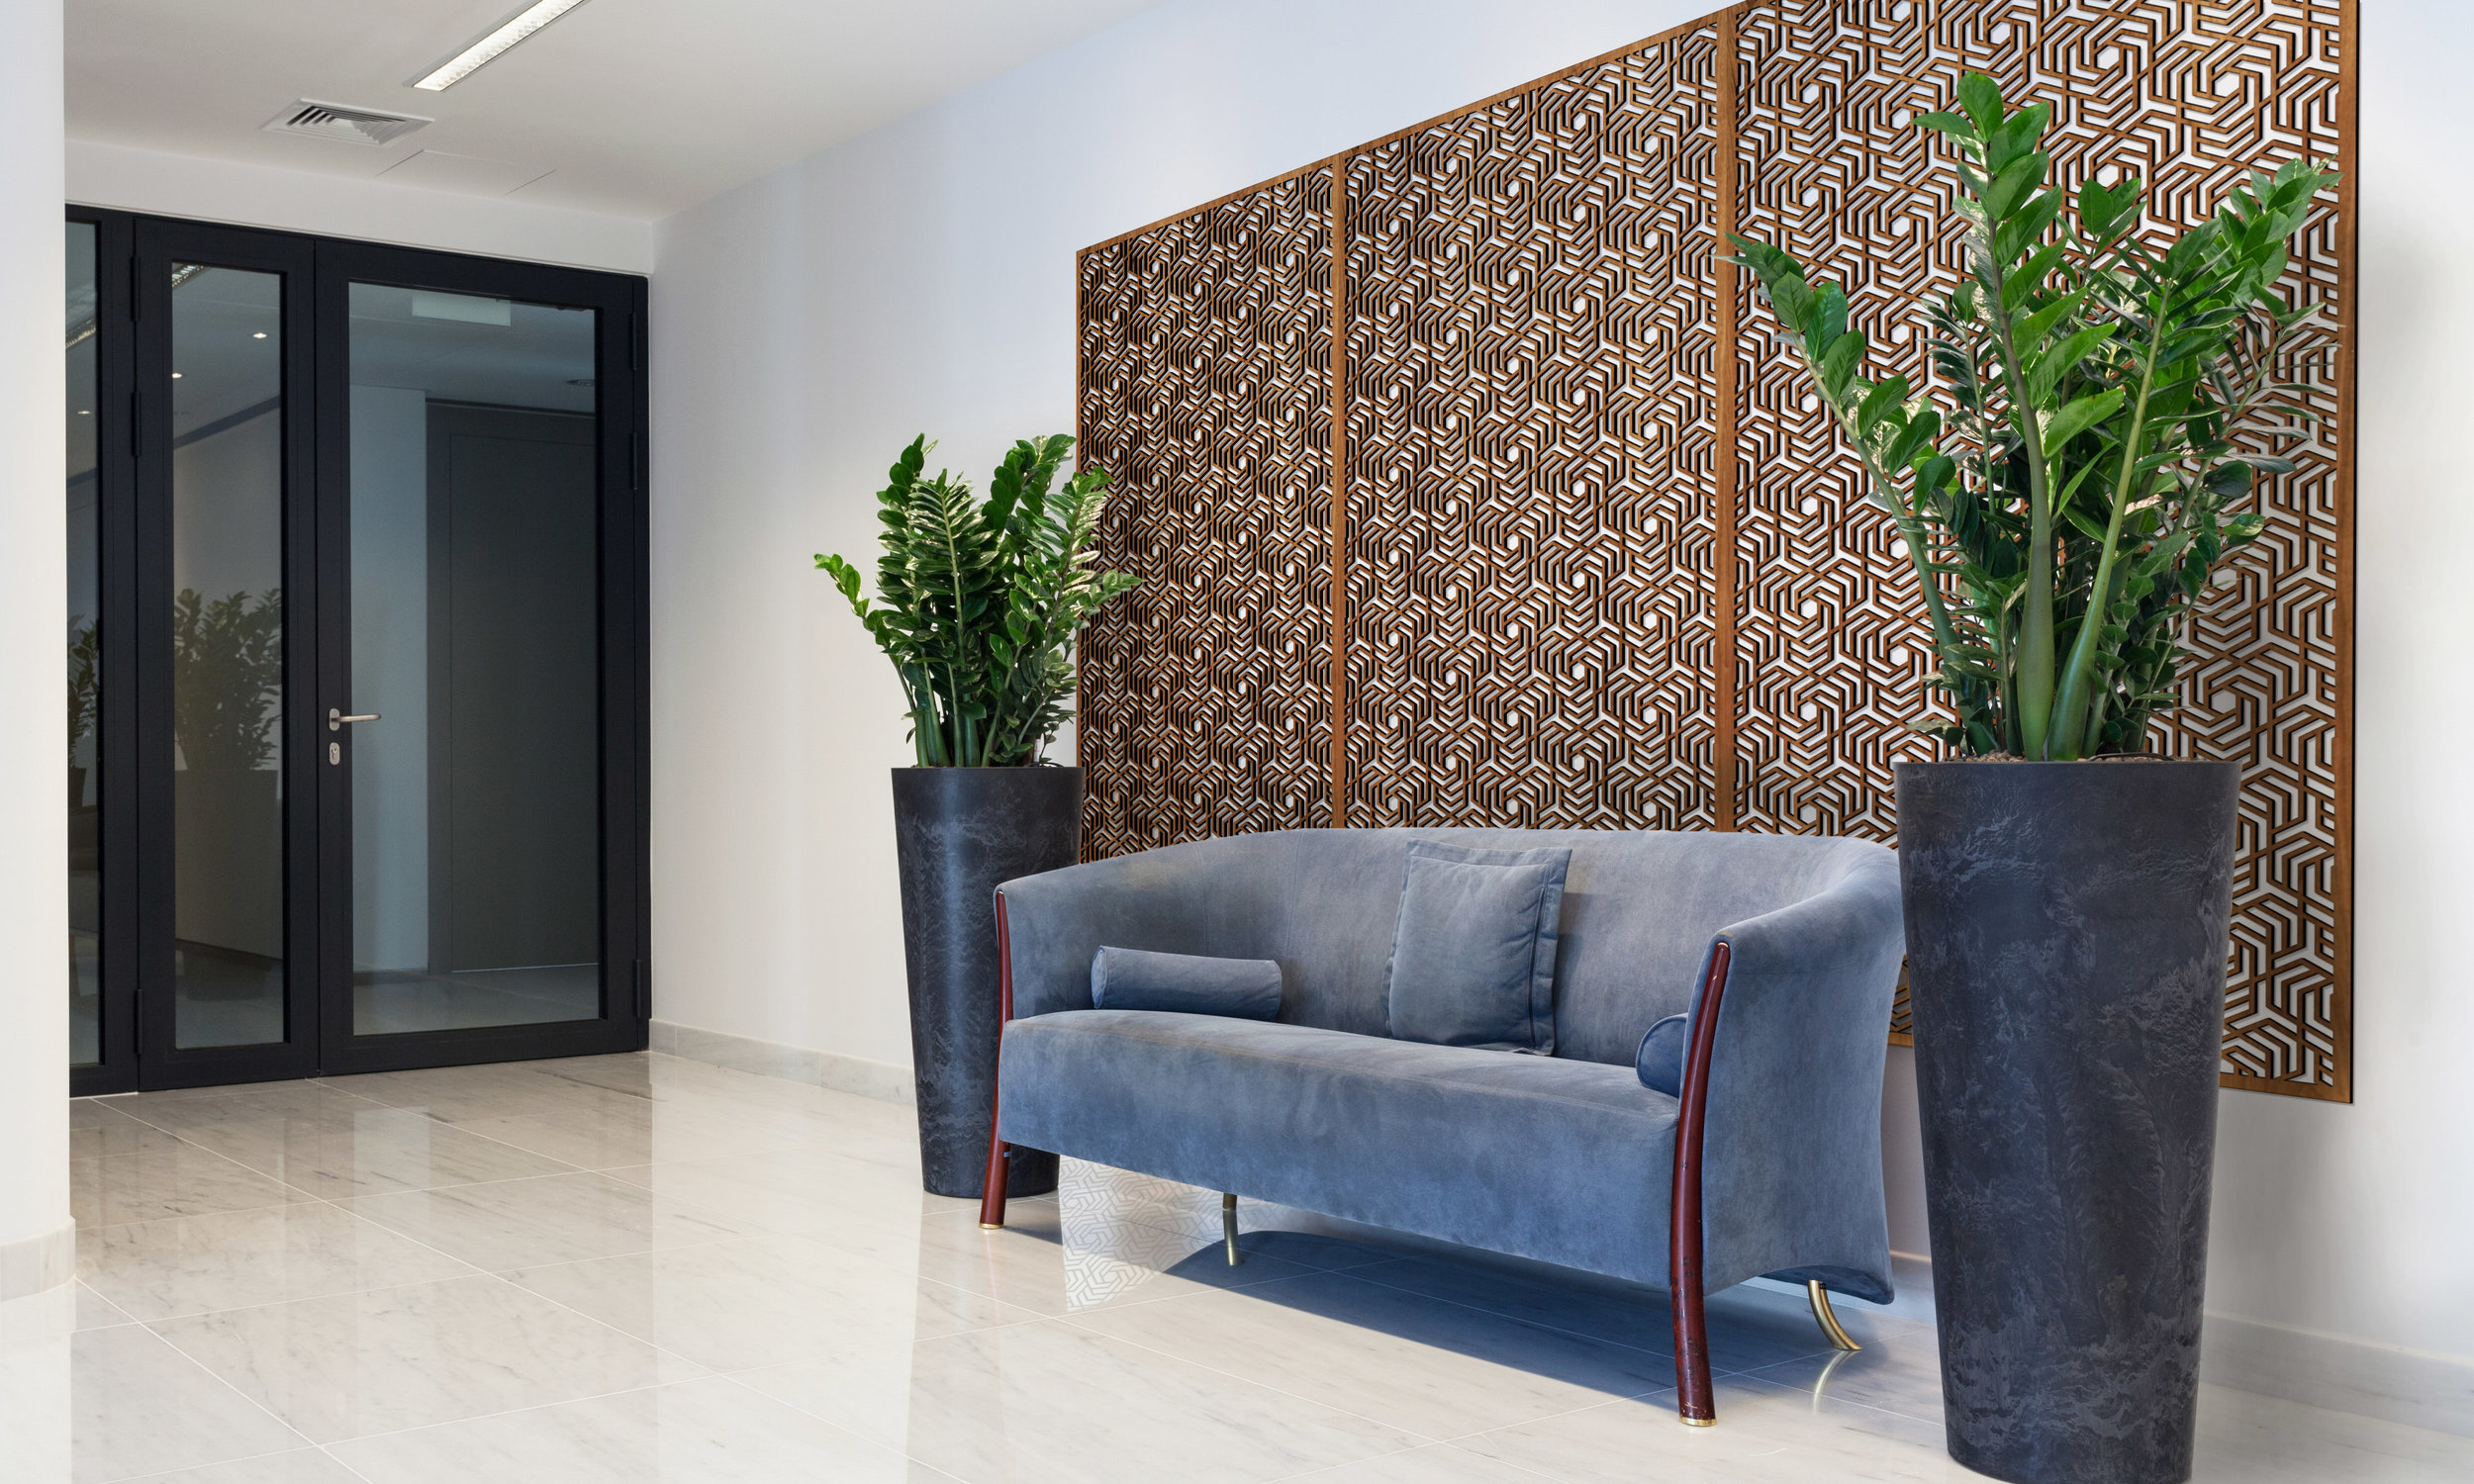 Installation Rendering A   Hexagon Puzzle decorative office wall panel - shown in Cherry